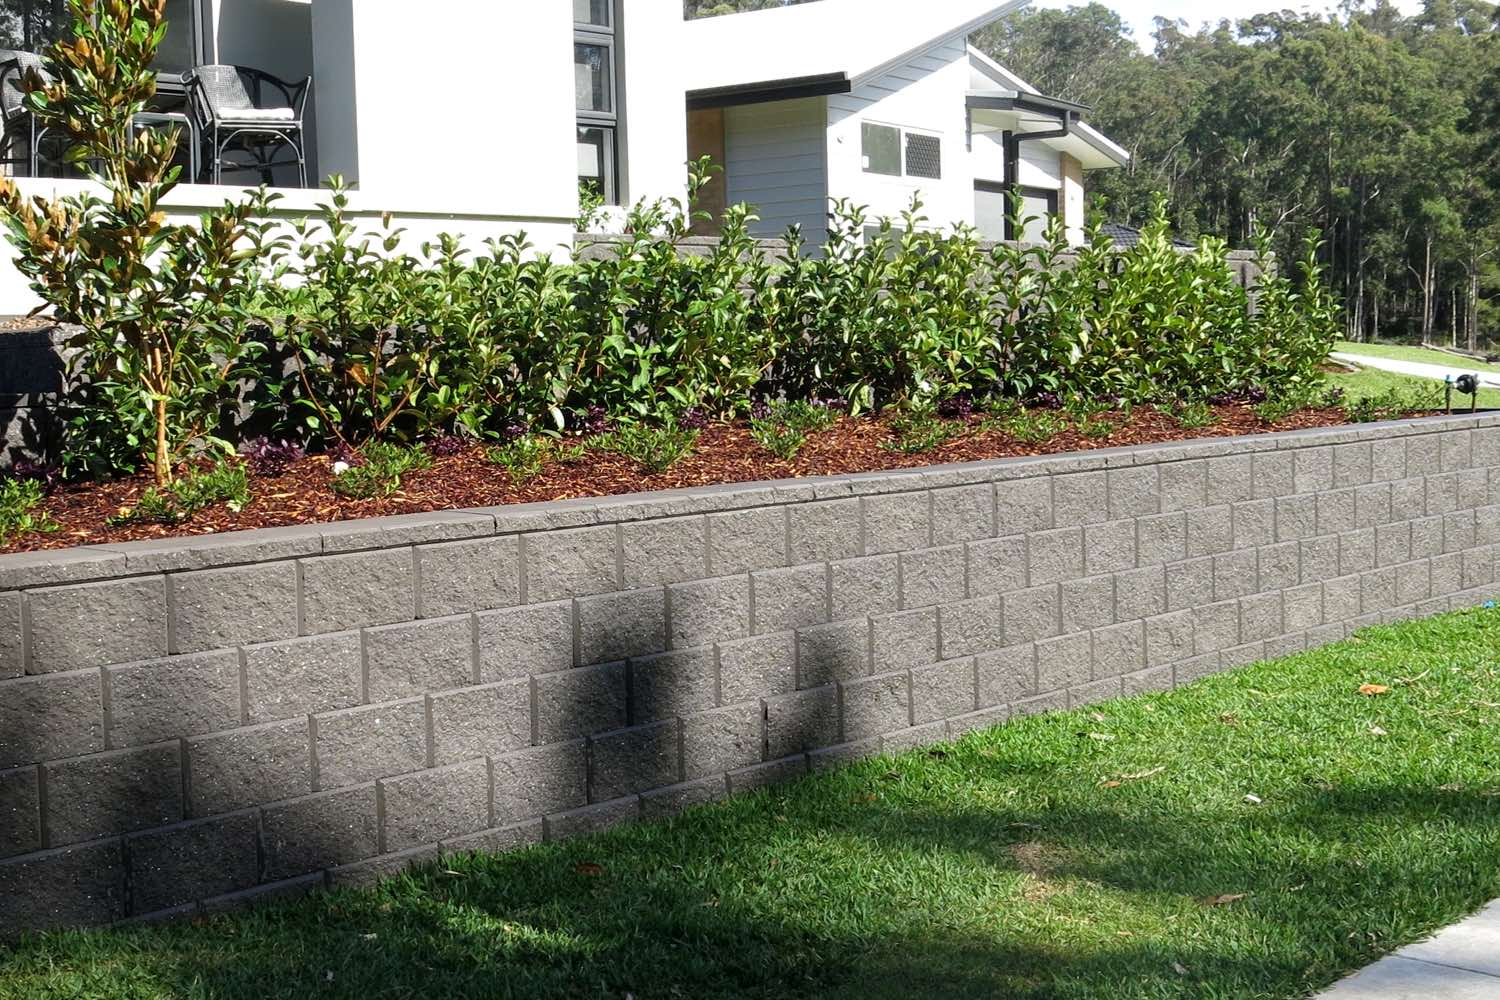 A tiered segmental block retaining wall built by Novascape at Cameron Park